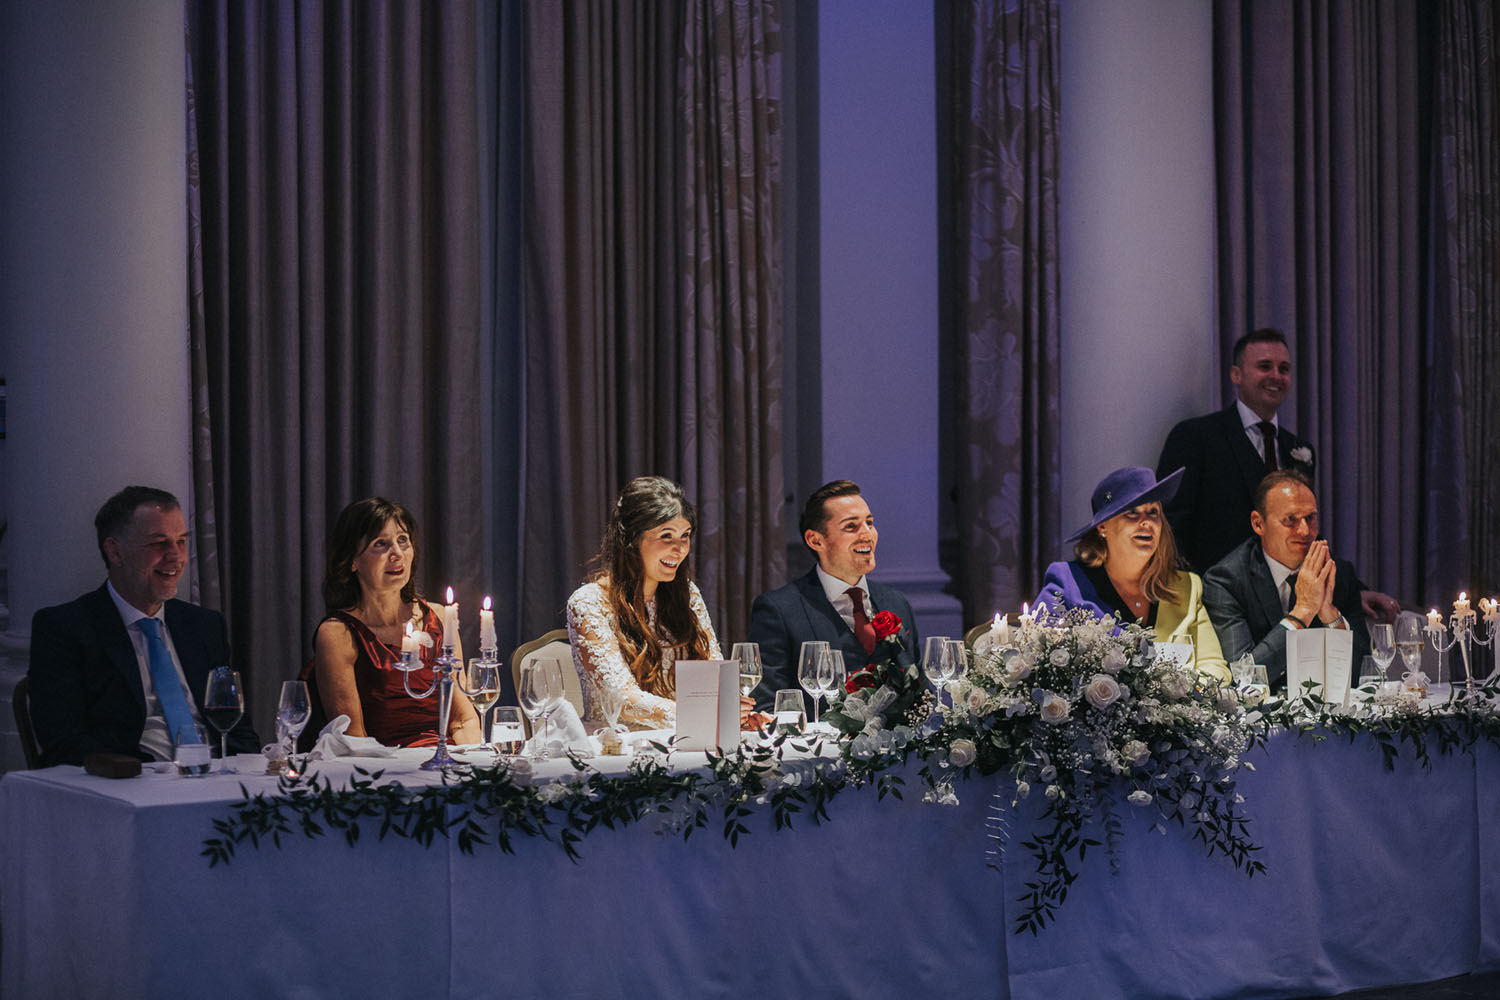 The Langham Hotel Wedding120.jpg